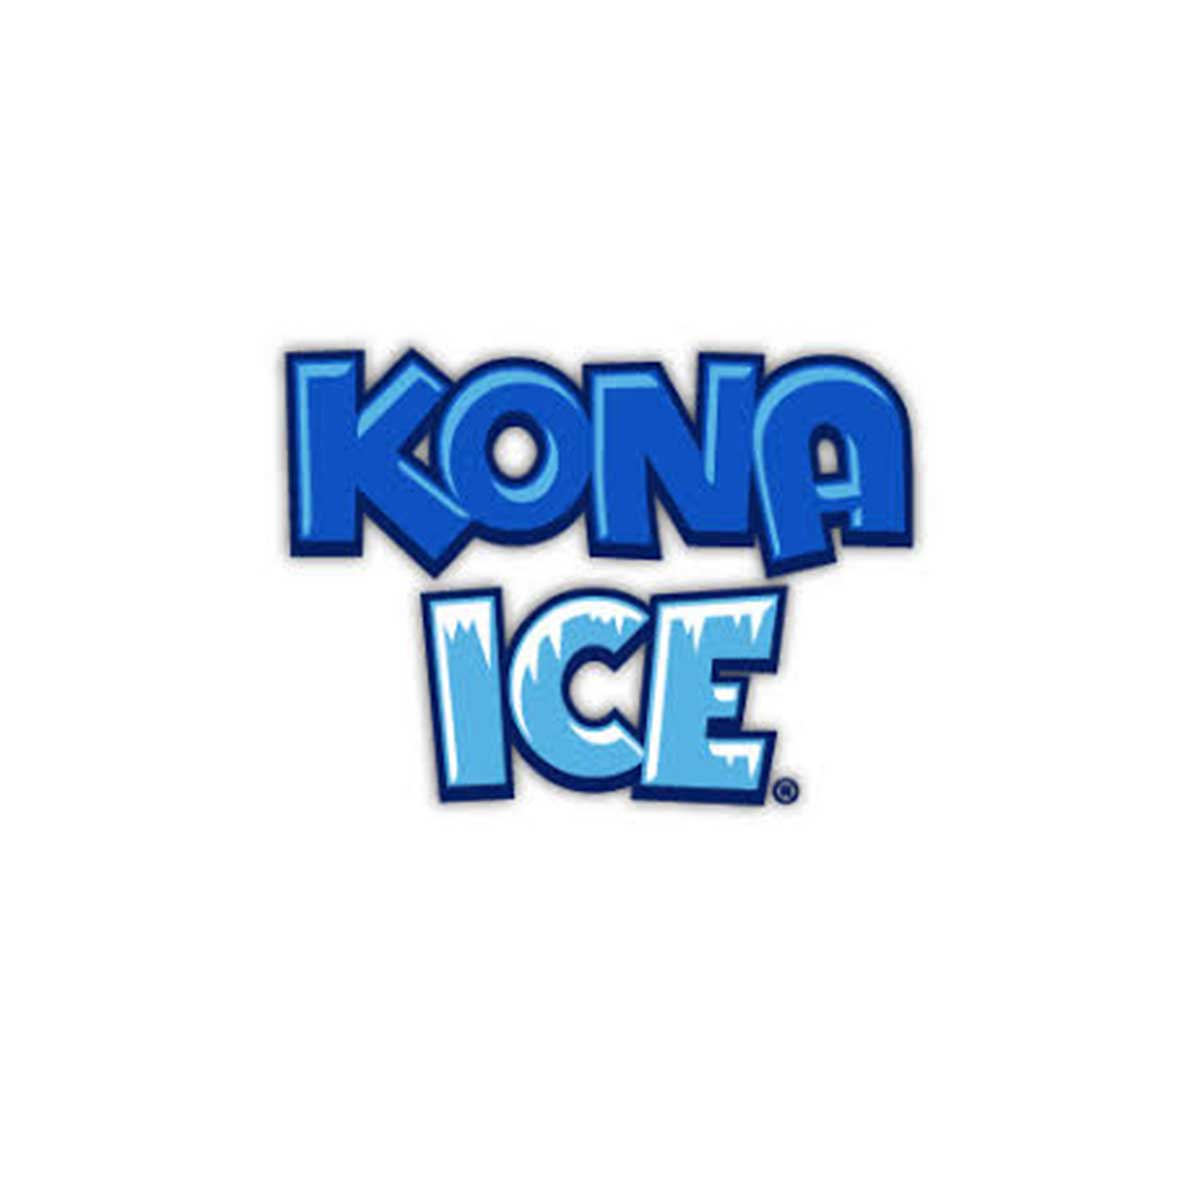 Kona Ice of Lowndes